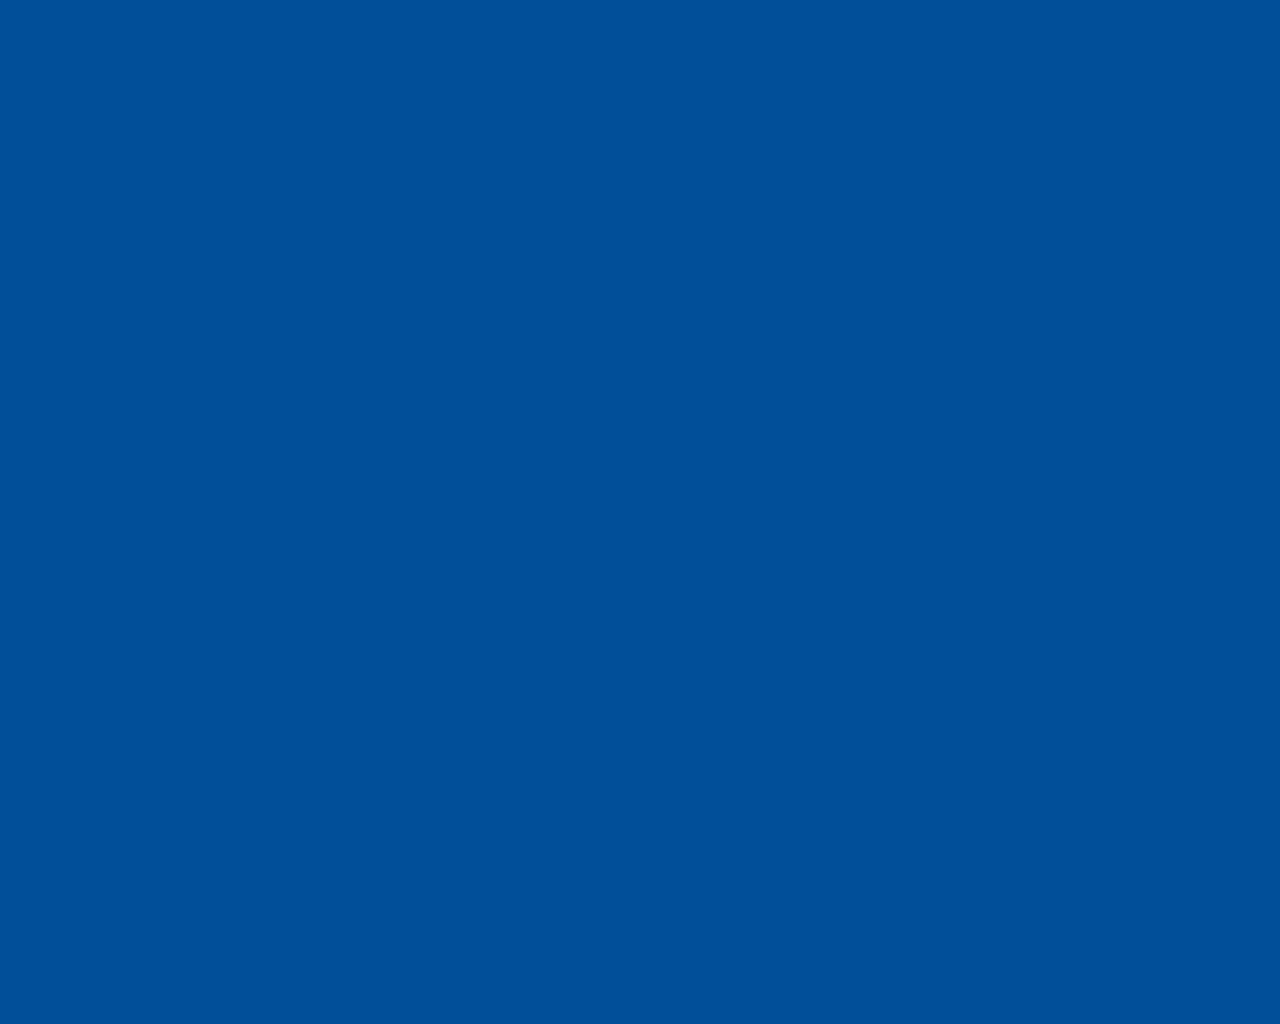 1280x1024 USAFA Blue Solid Color Background